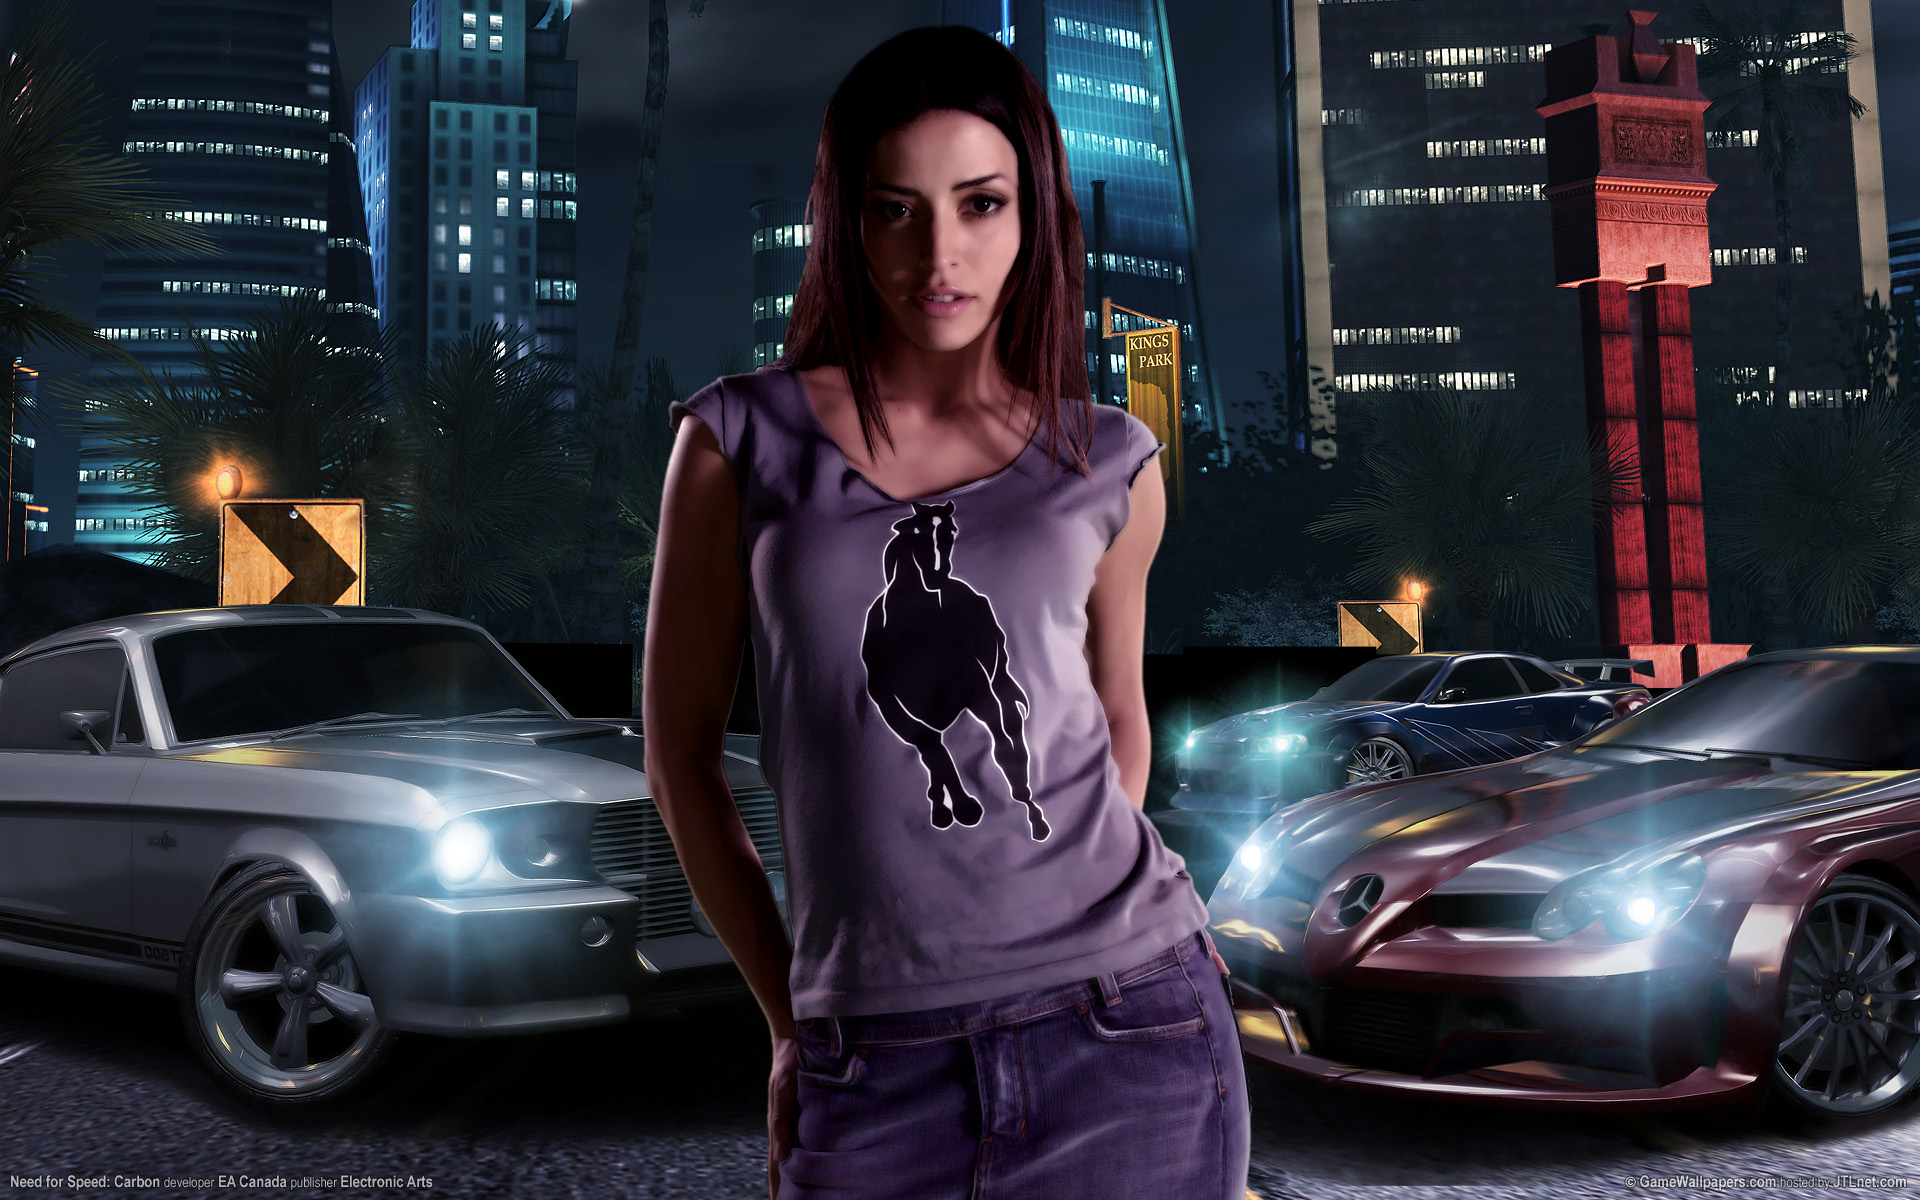 Need for speed carbon Girl 2 232.21 Kb